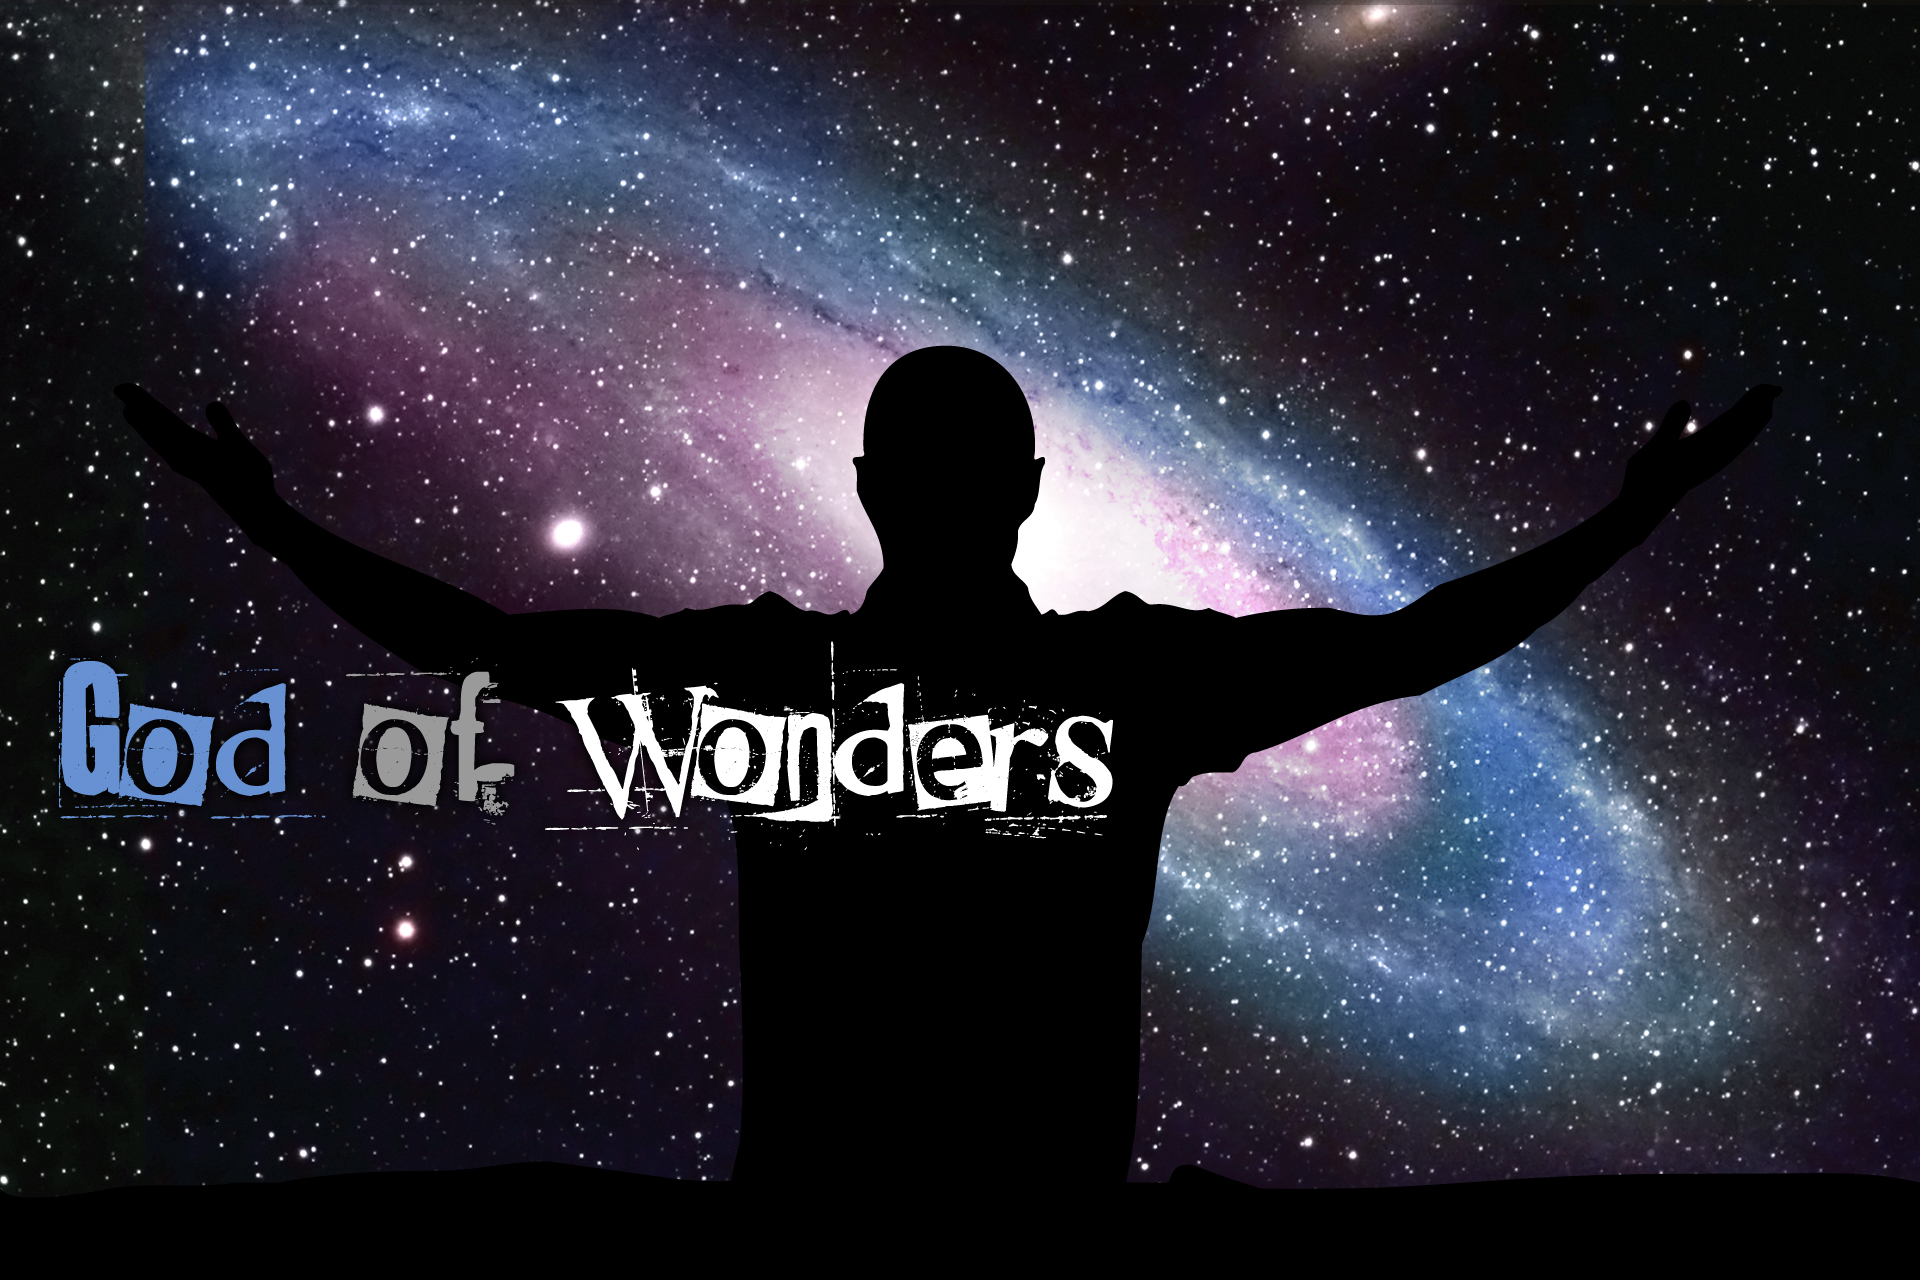 God_of_Wonders_Title_Slide